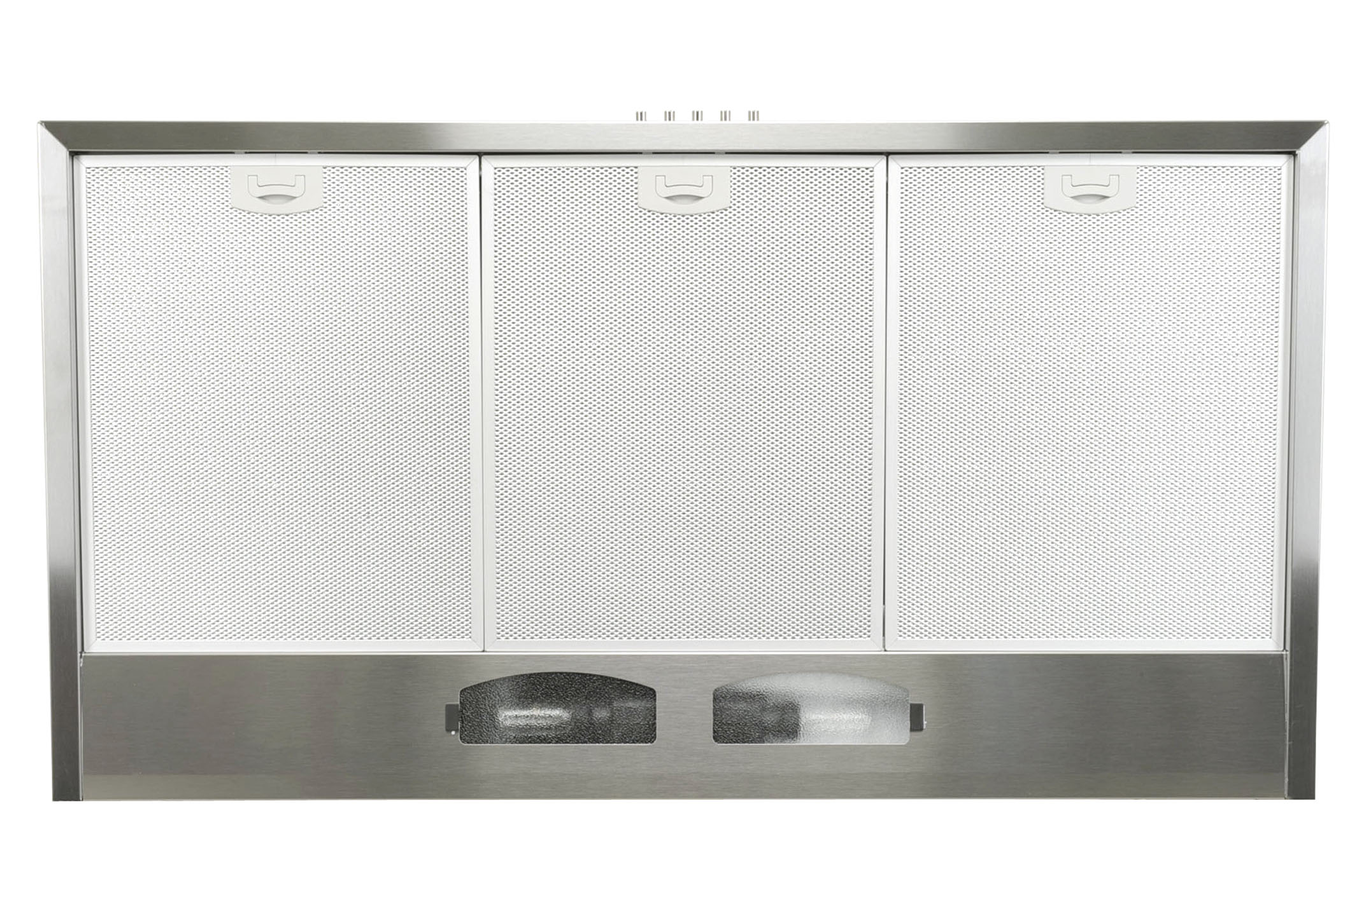 Hotte d corative murale candy cmb 90 x inox 2786737 darty for Installation hotte murale